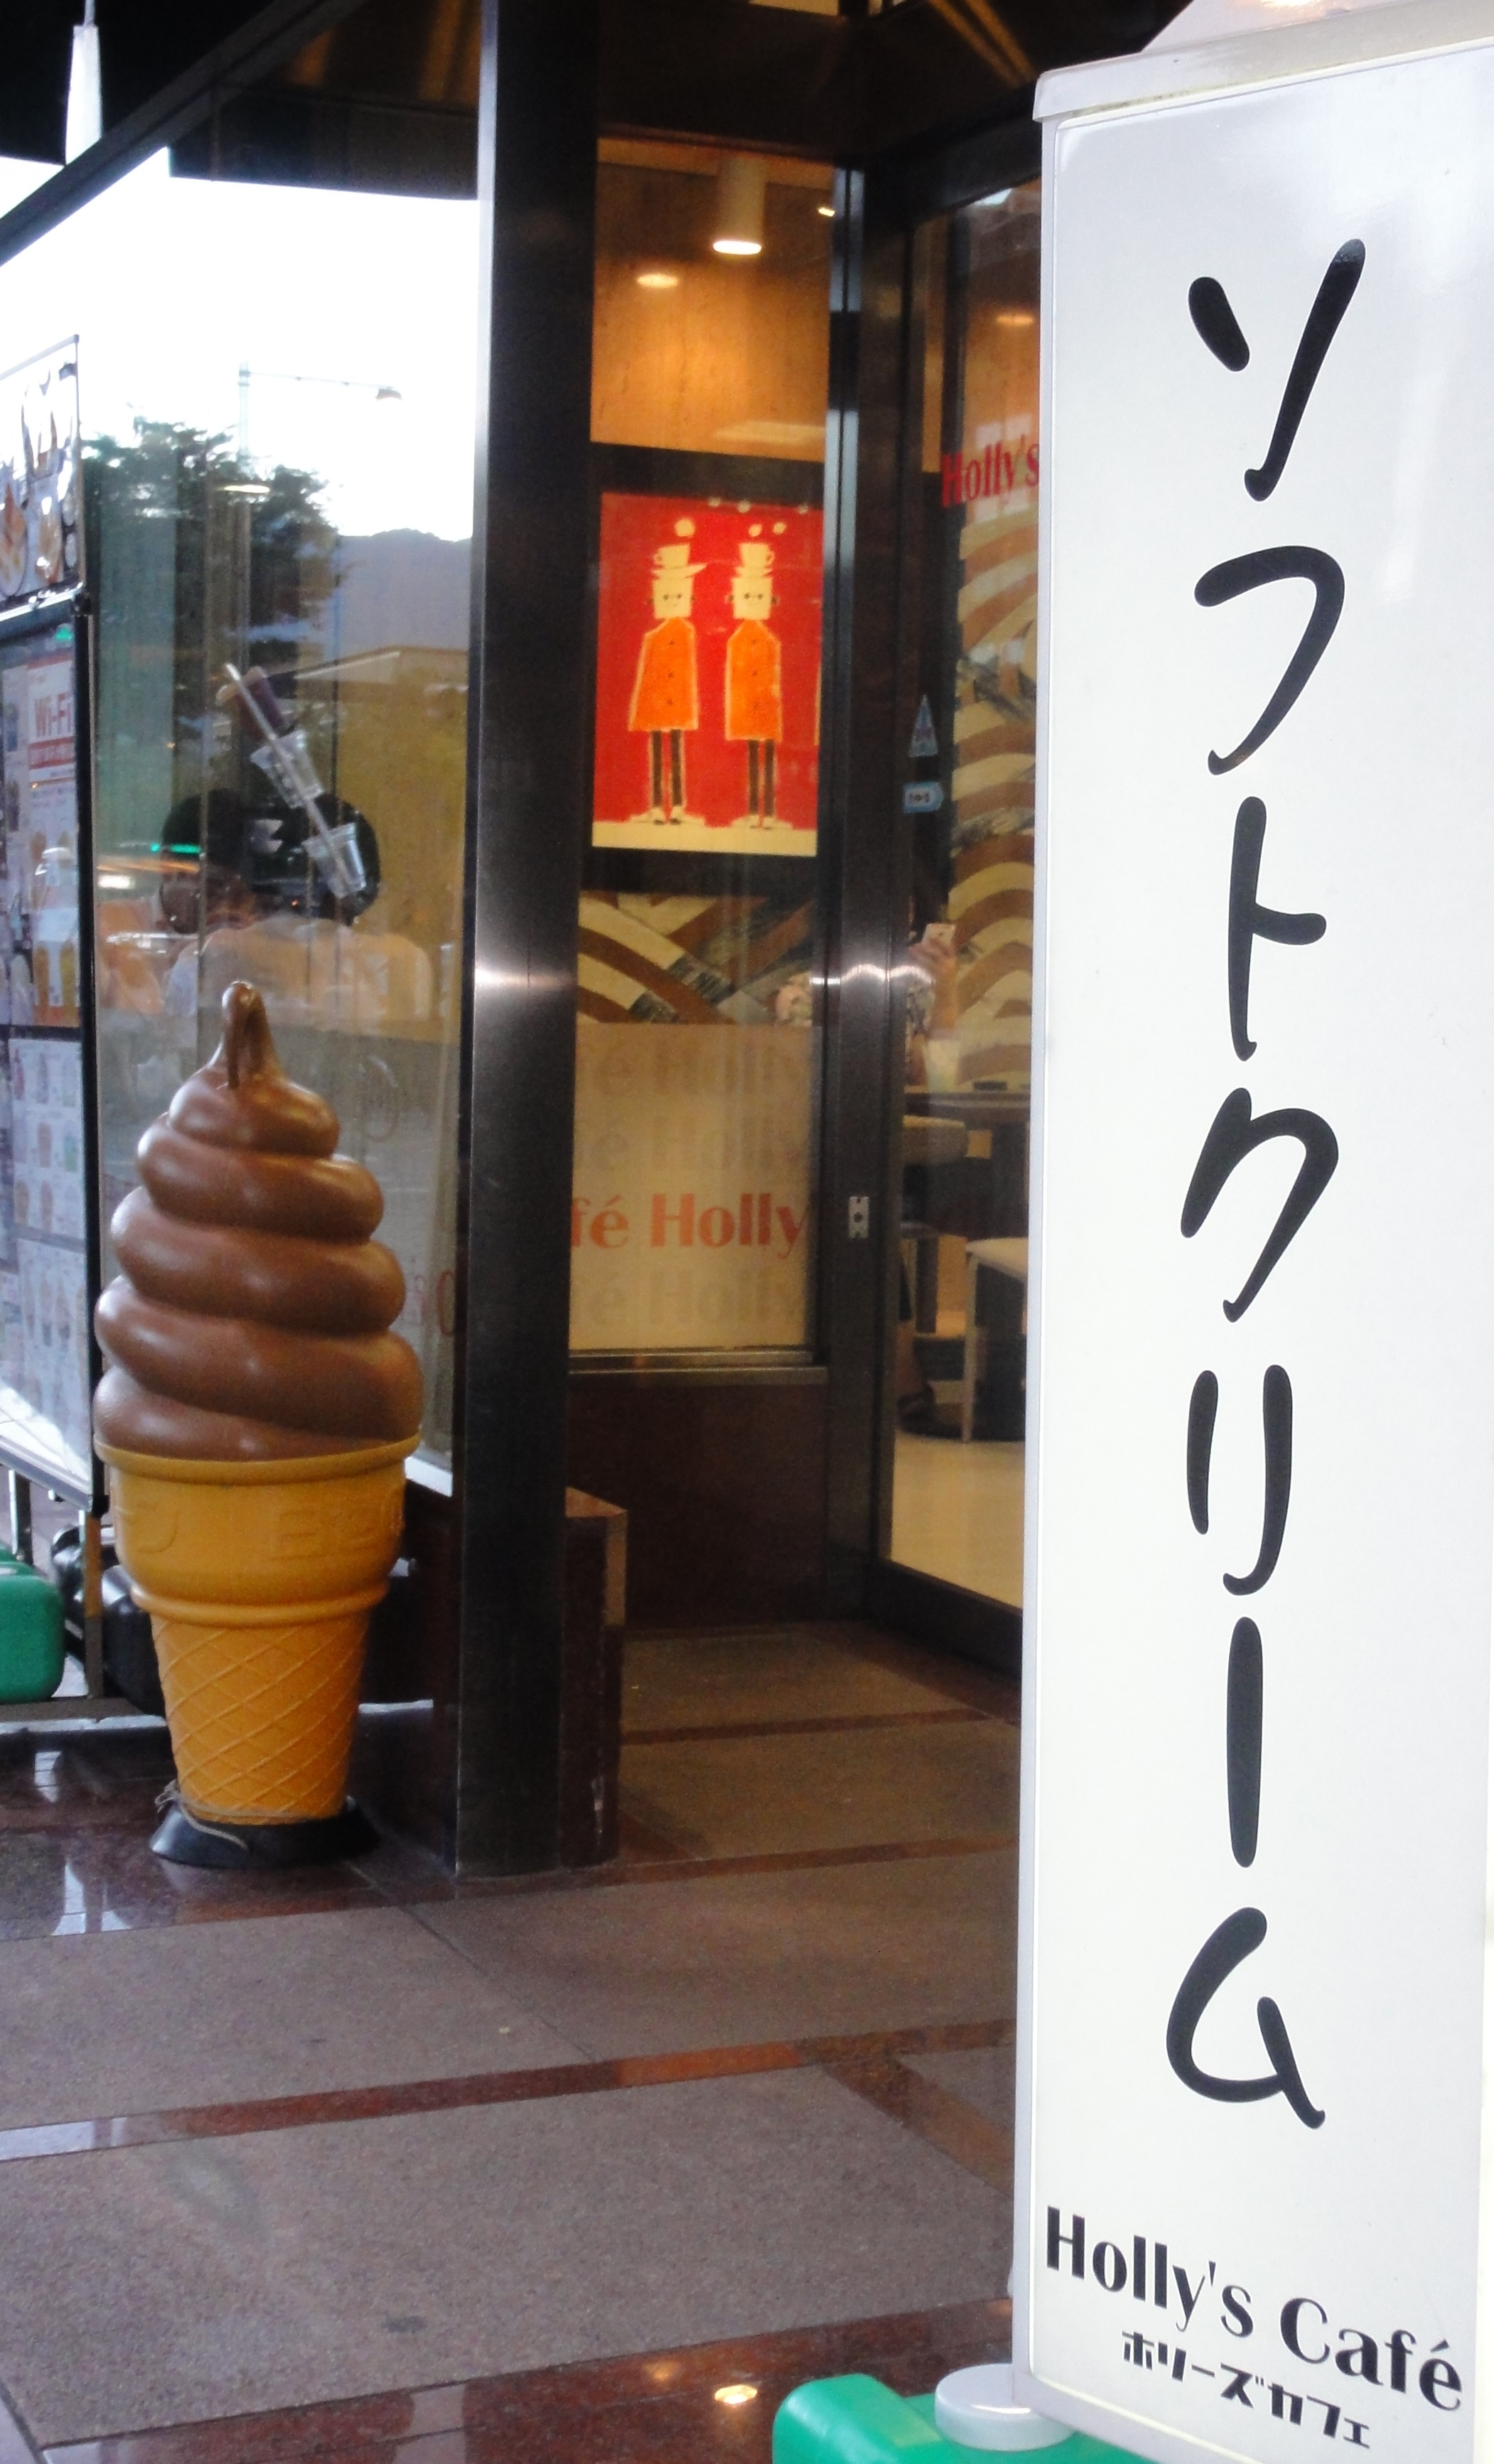 Japan cafe soft serve ice cream sign in katakana Japanese alphabet